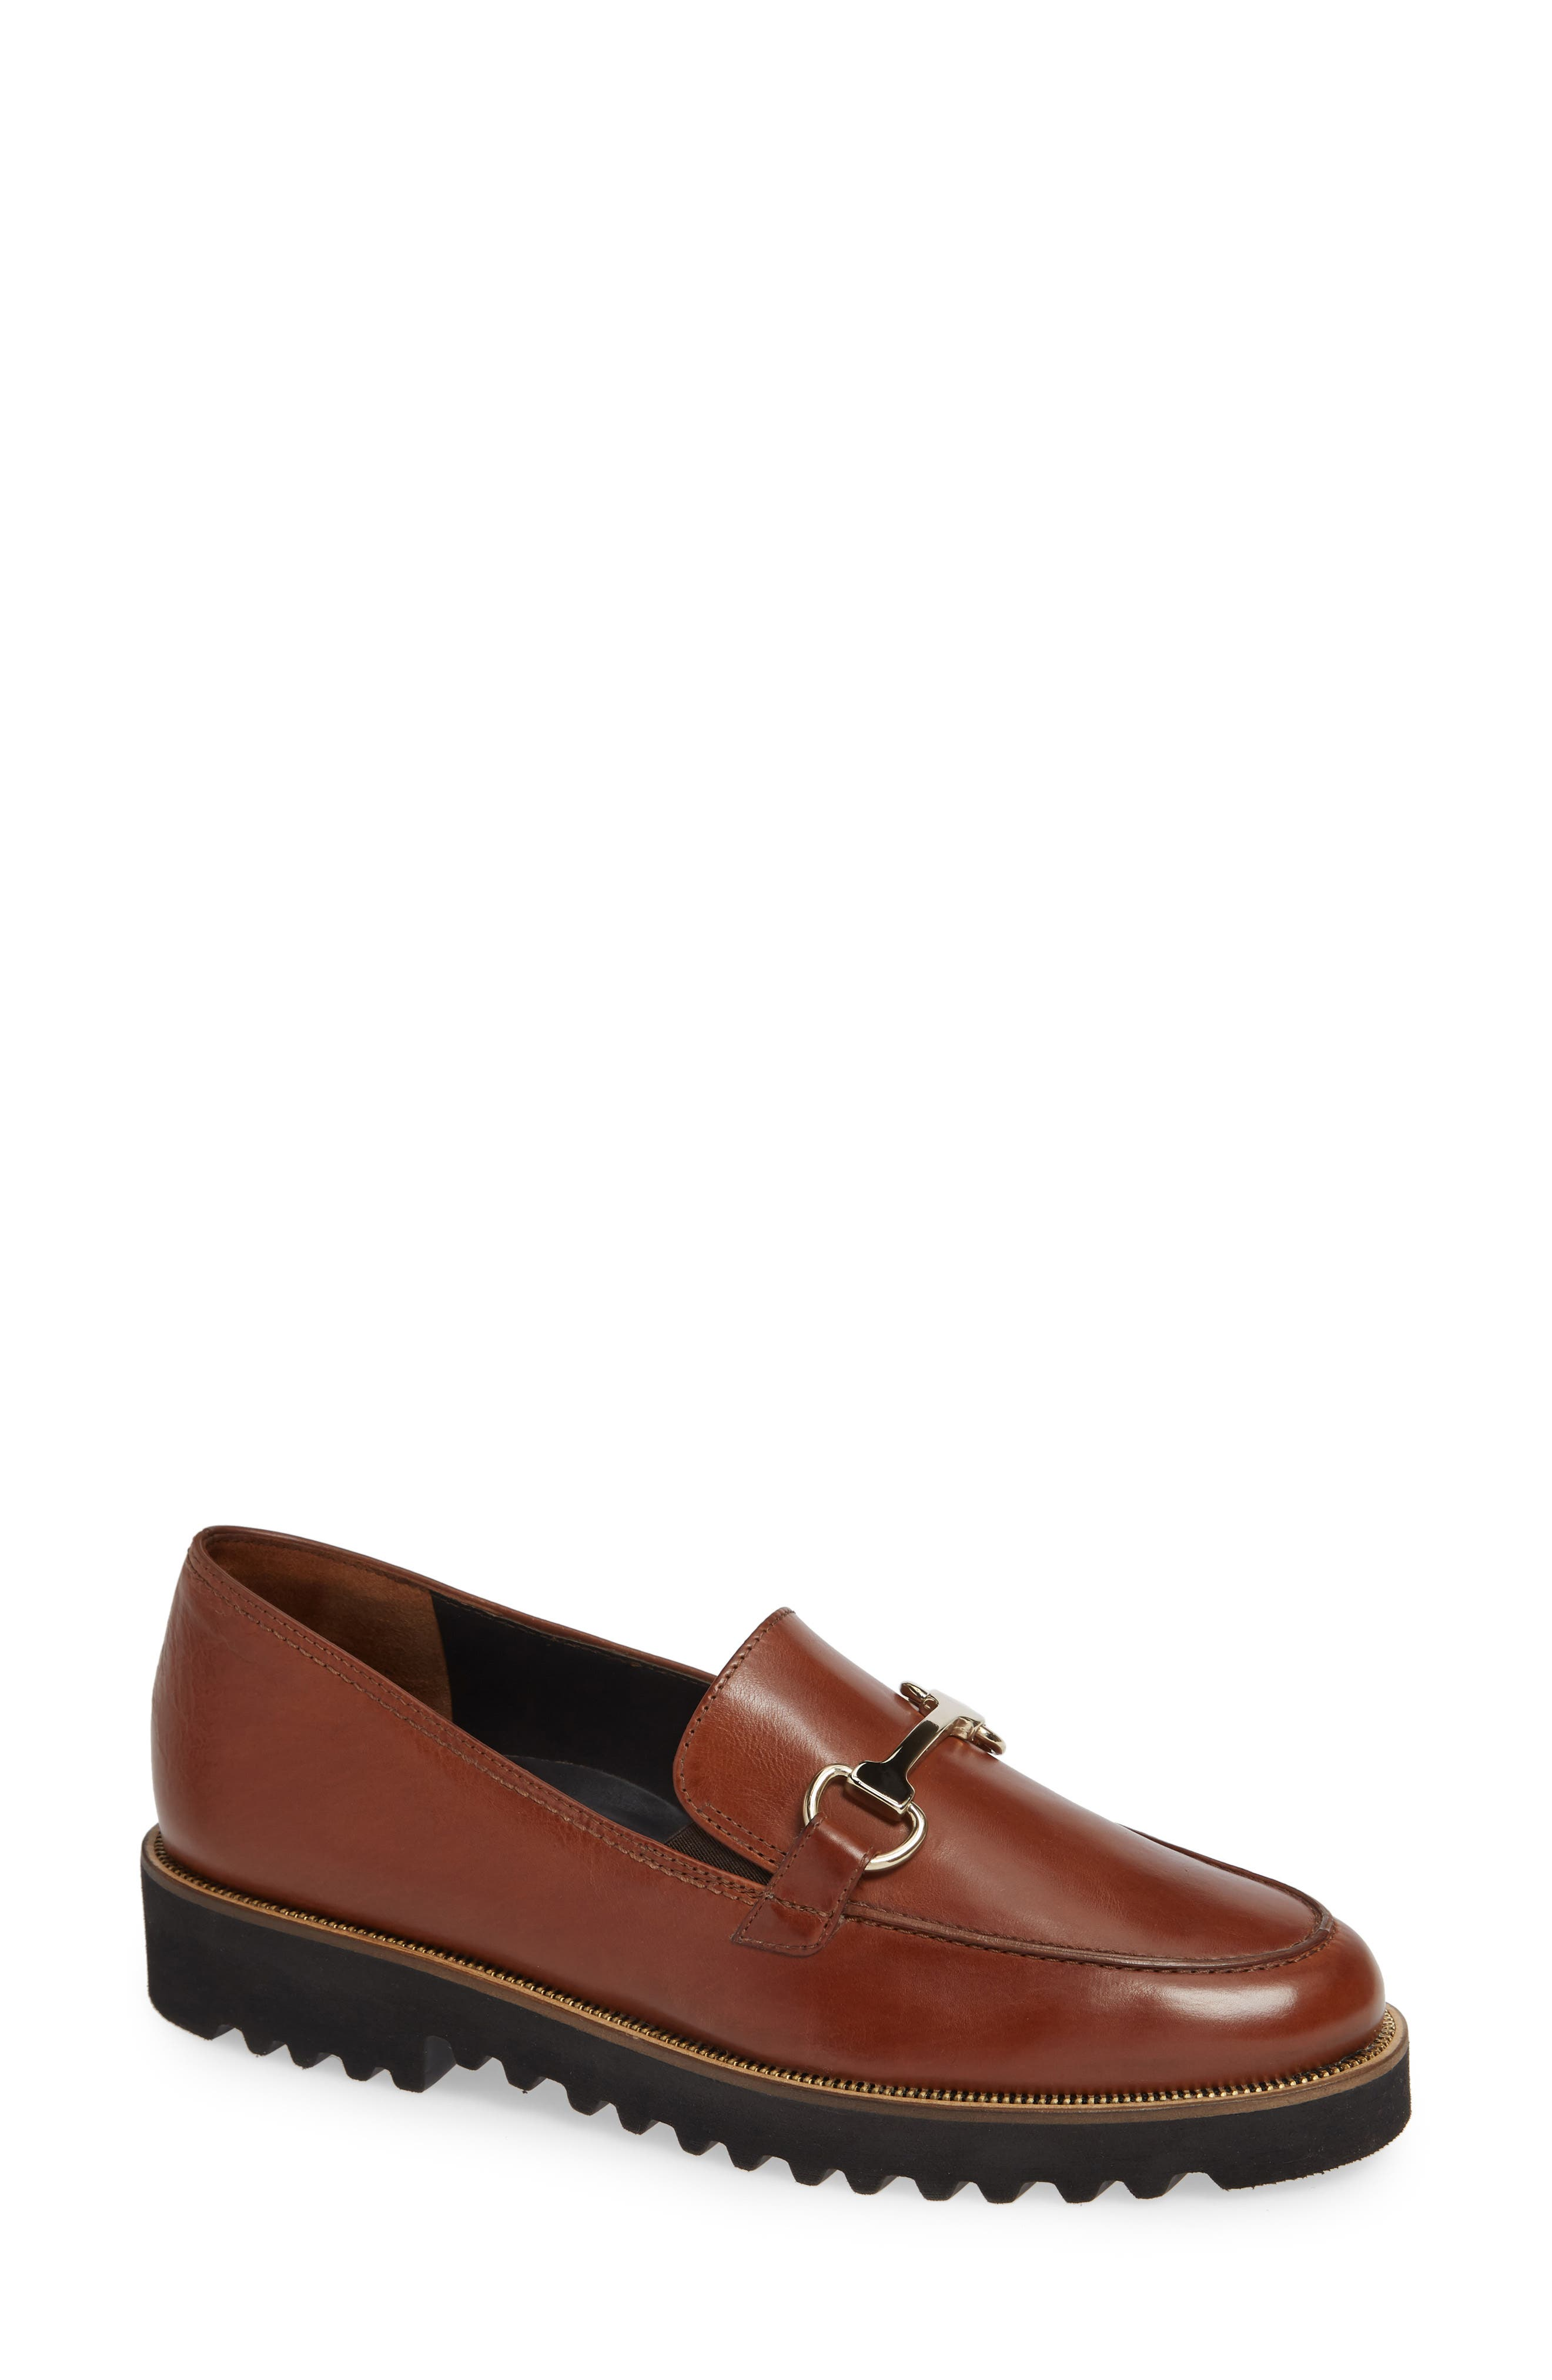 Topper Loafer,                         Main,                         color, COGNAC LEATHER